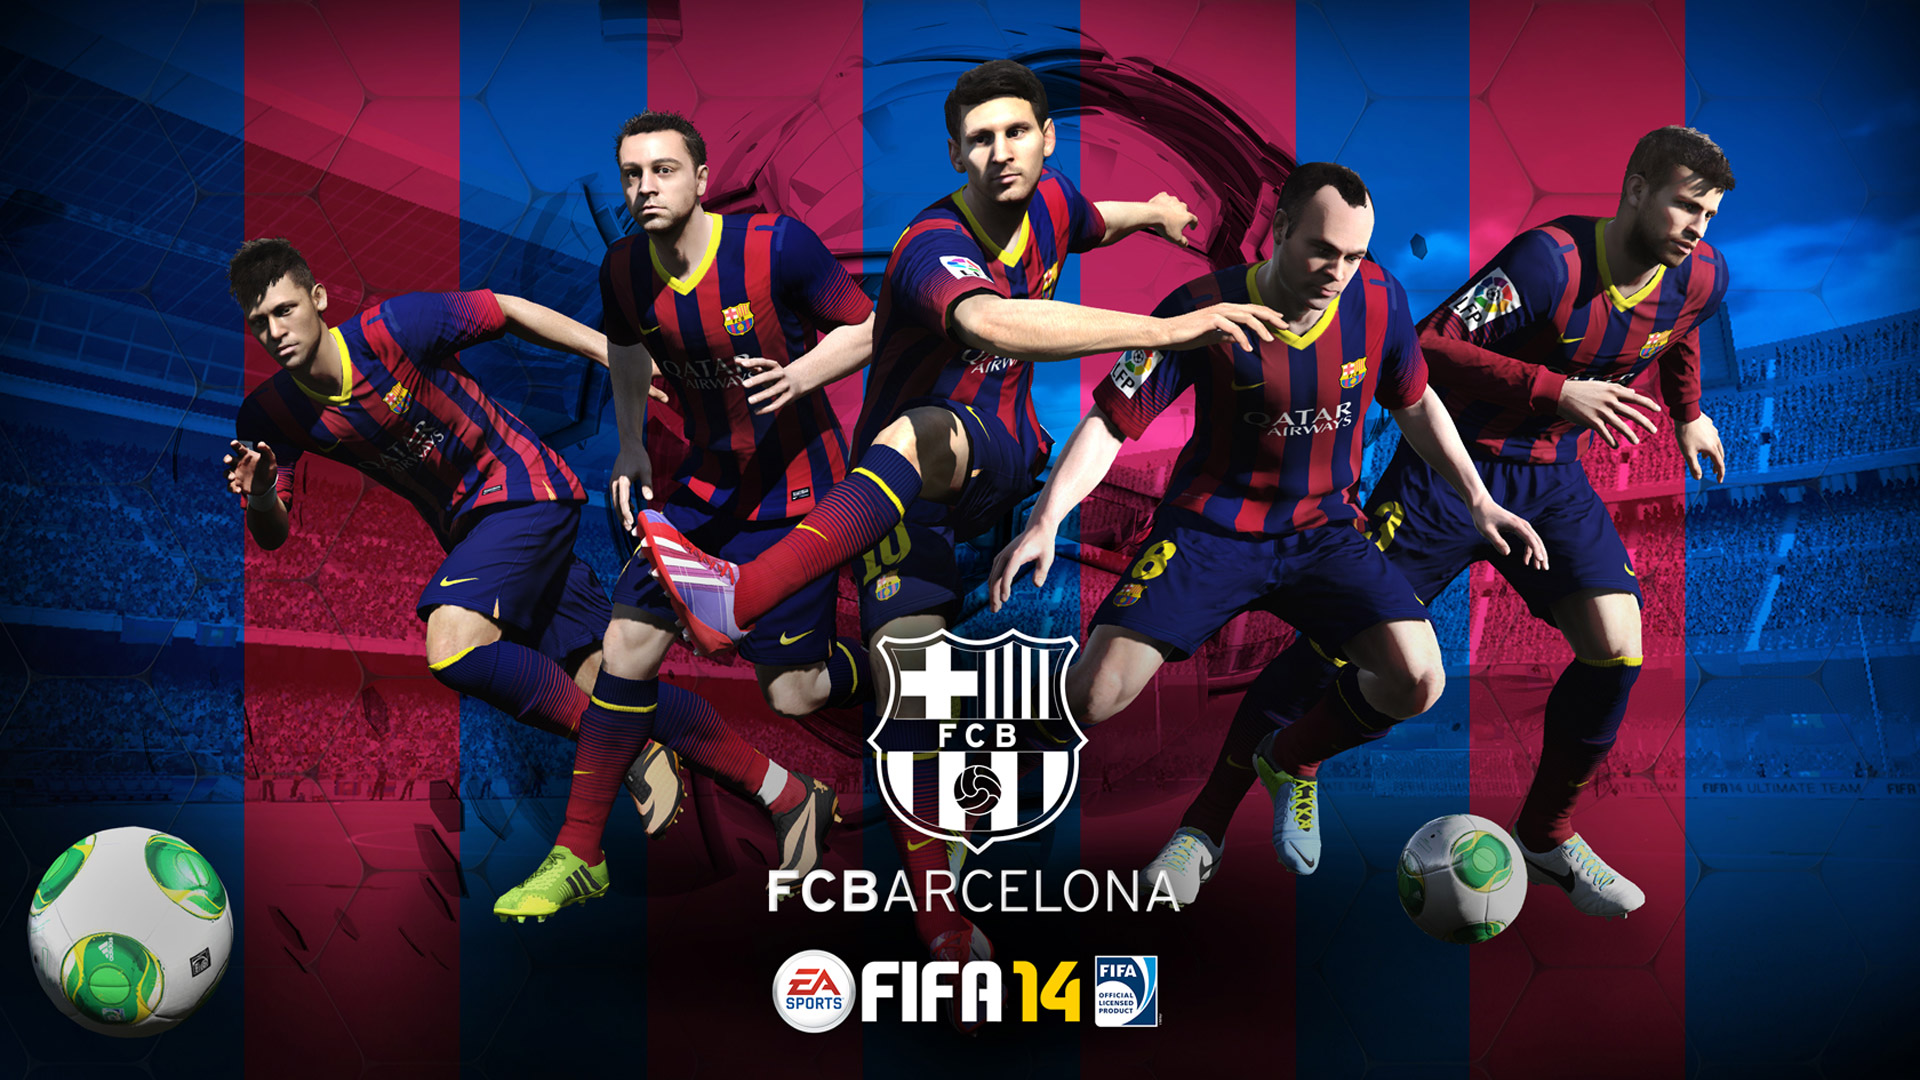 Messi HD Wallpapers 1080p 2015 1920x1080